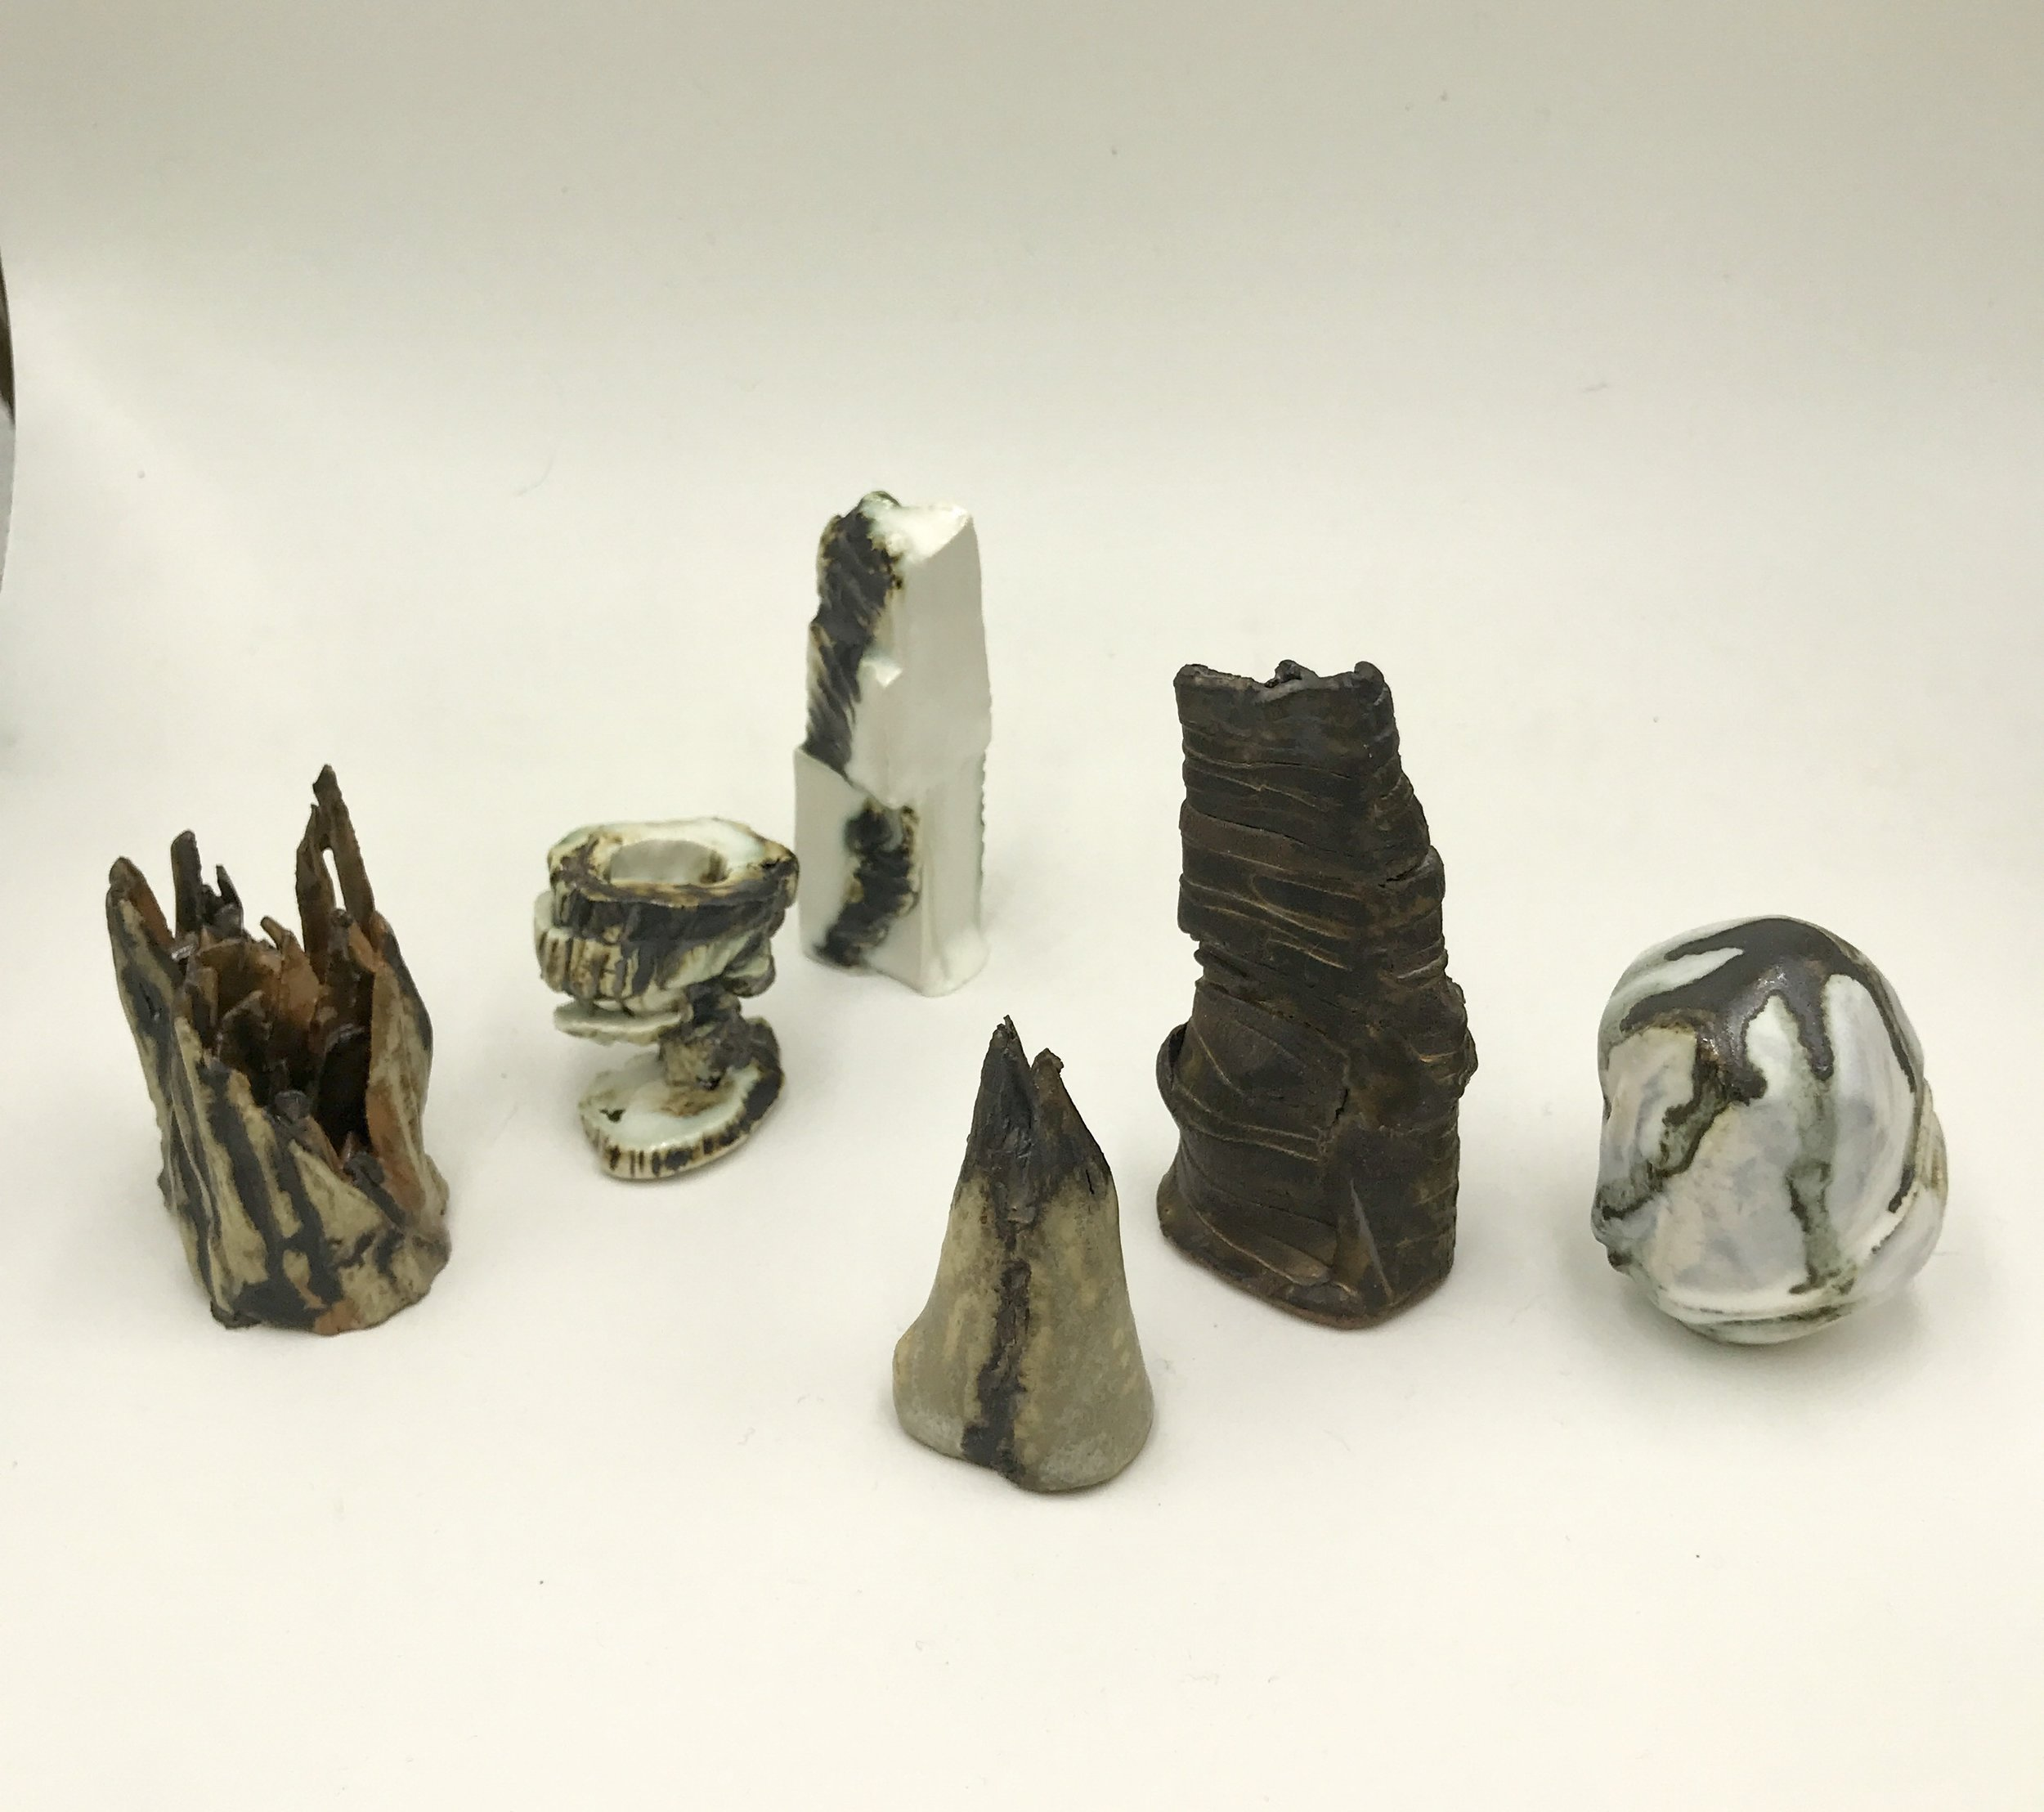 Hilda Shen, Range of Mountains, 2014-2019. Glazed clay, Variable dimensions, ranging between 1-4 inches ©Hilda Shen, courtesy of Fou Gallery